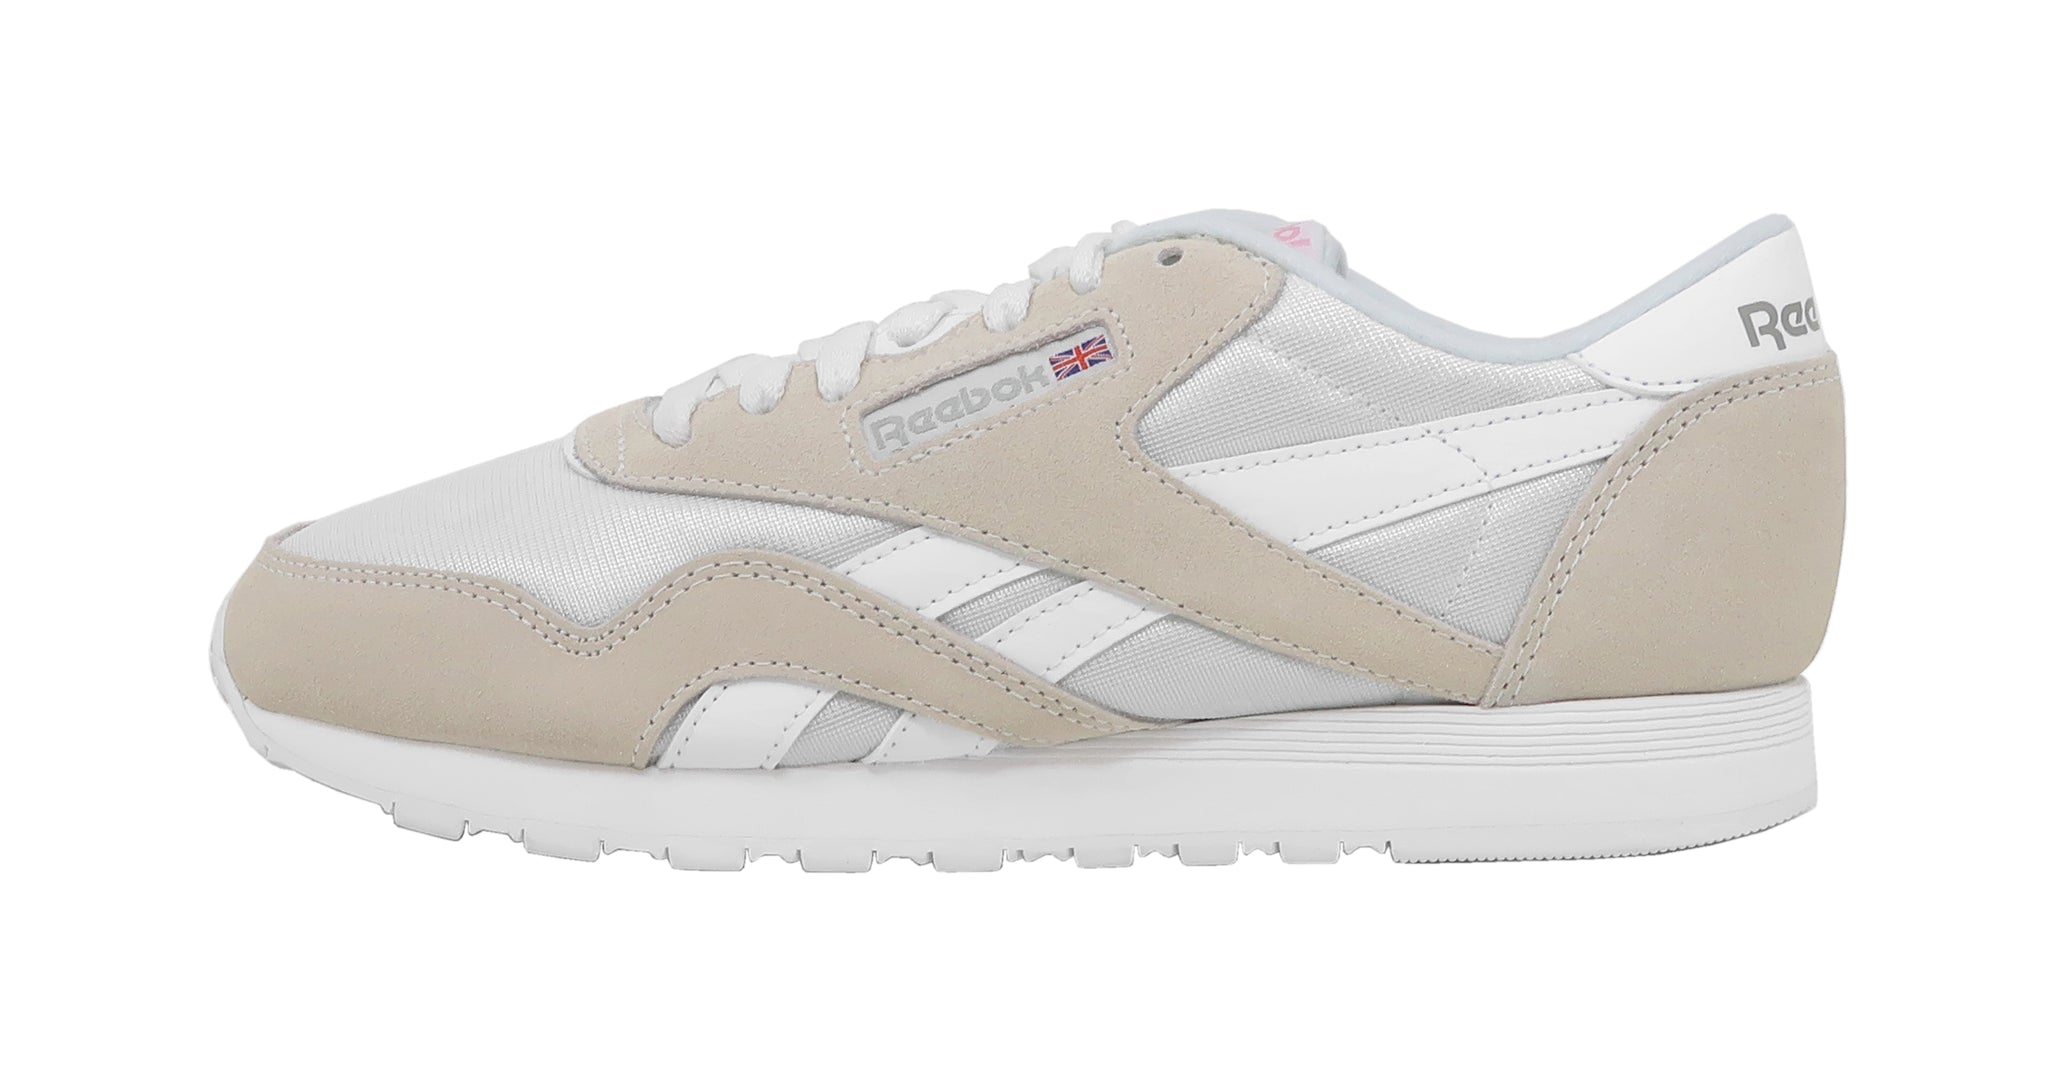 Reebok Classic White/Light Grey Women's Shoes